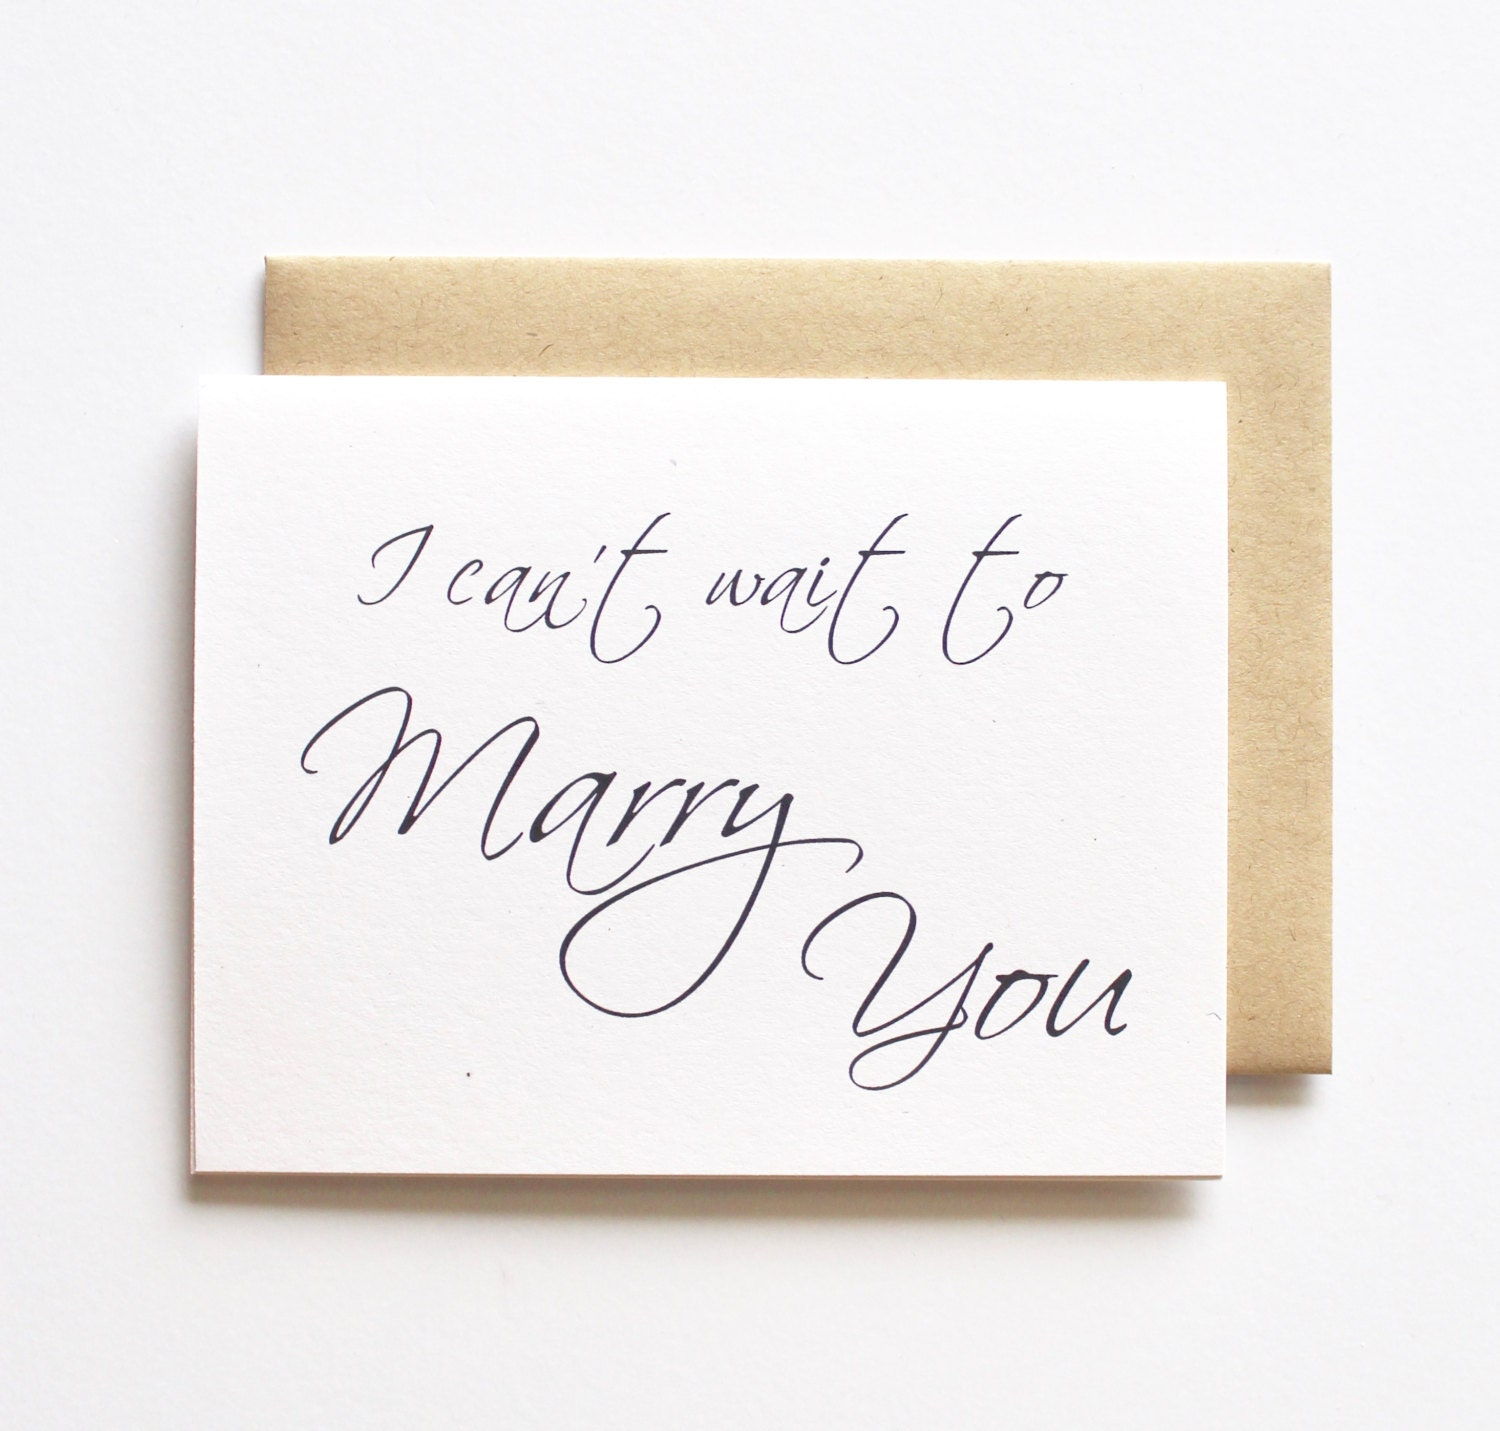 Wedding day cards for each other i can t wait to marry you wedding day - Request A Custom Order And Have Something Made Just For You